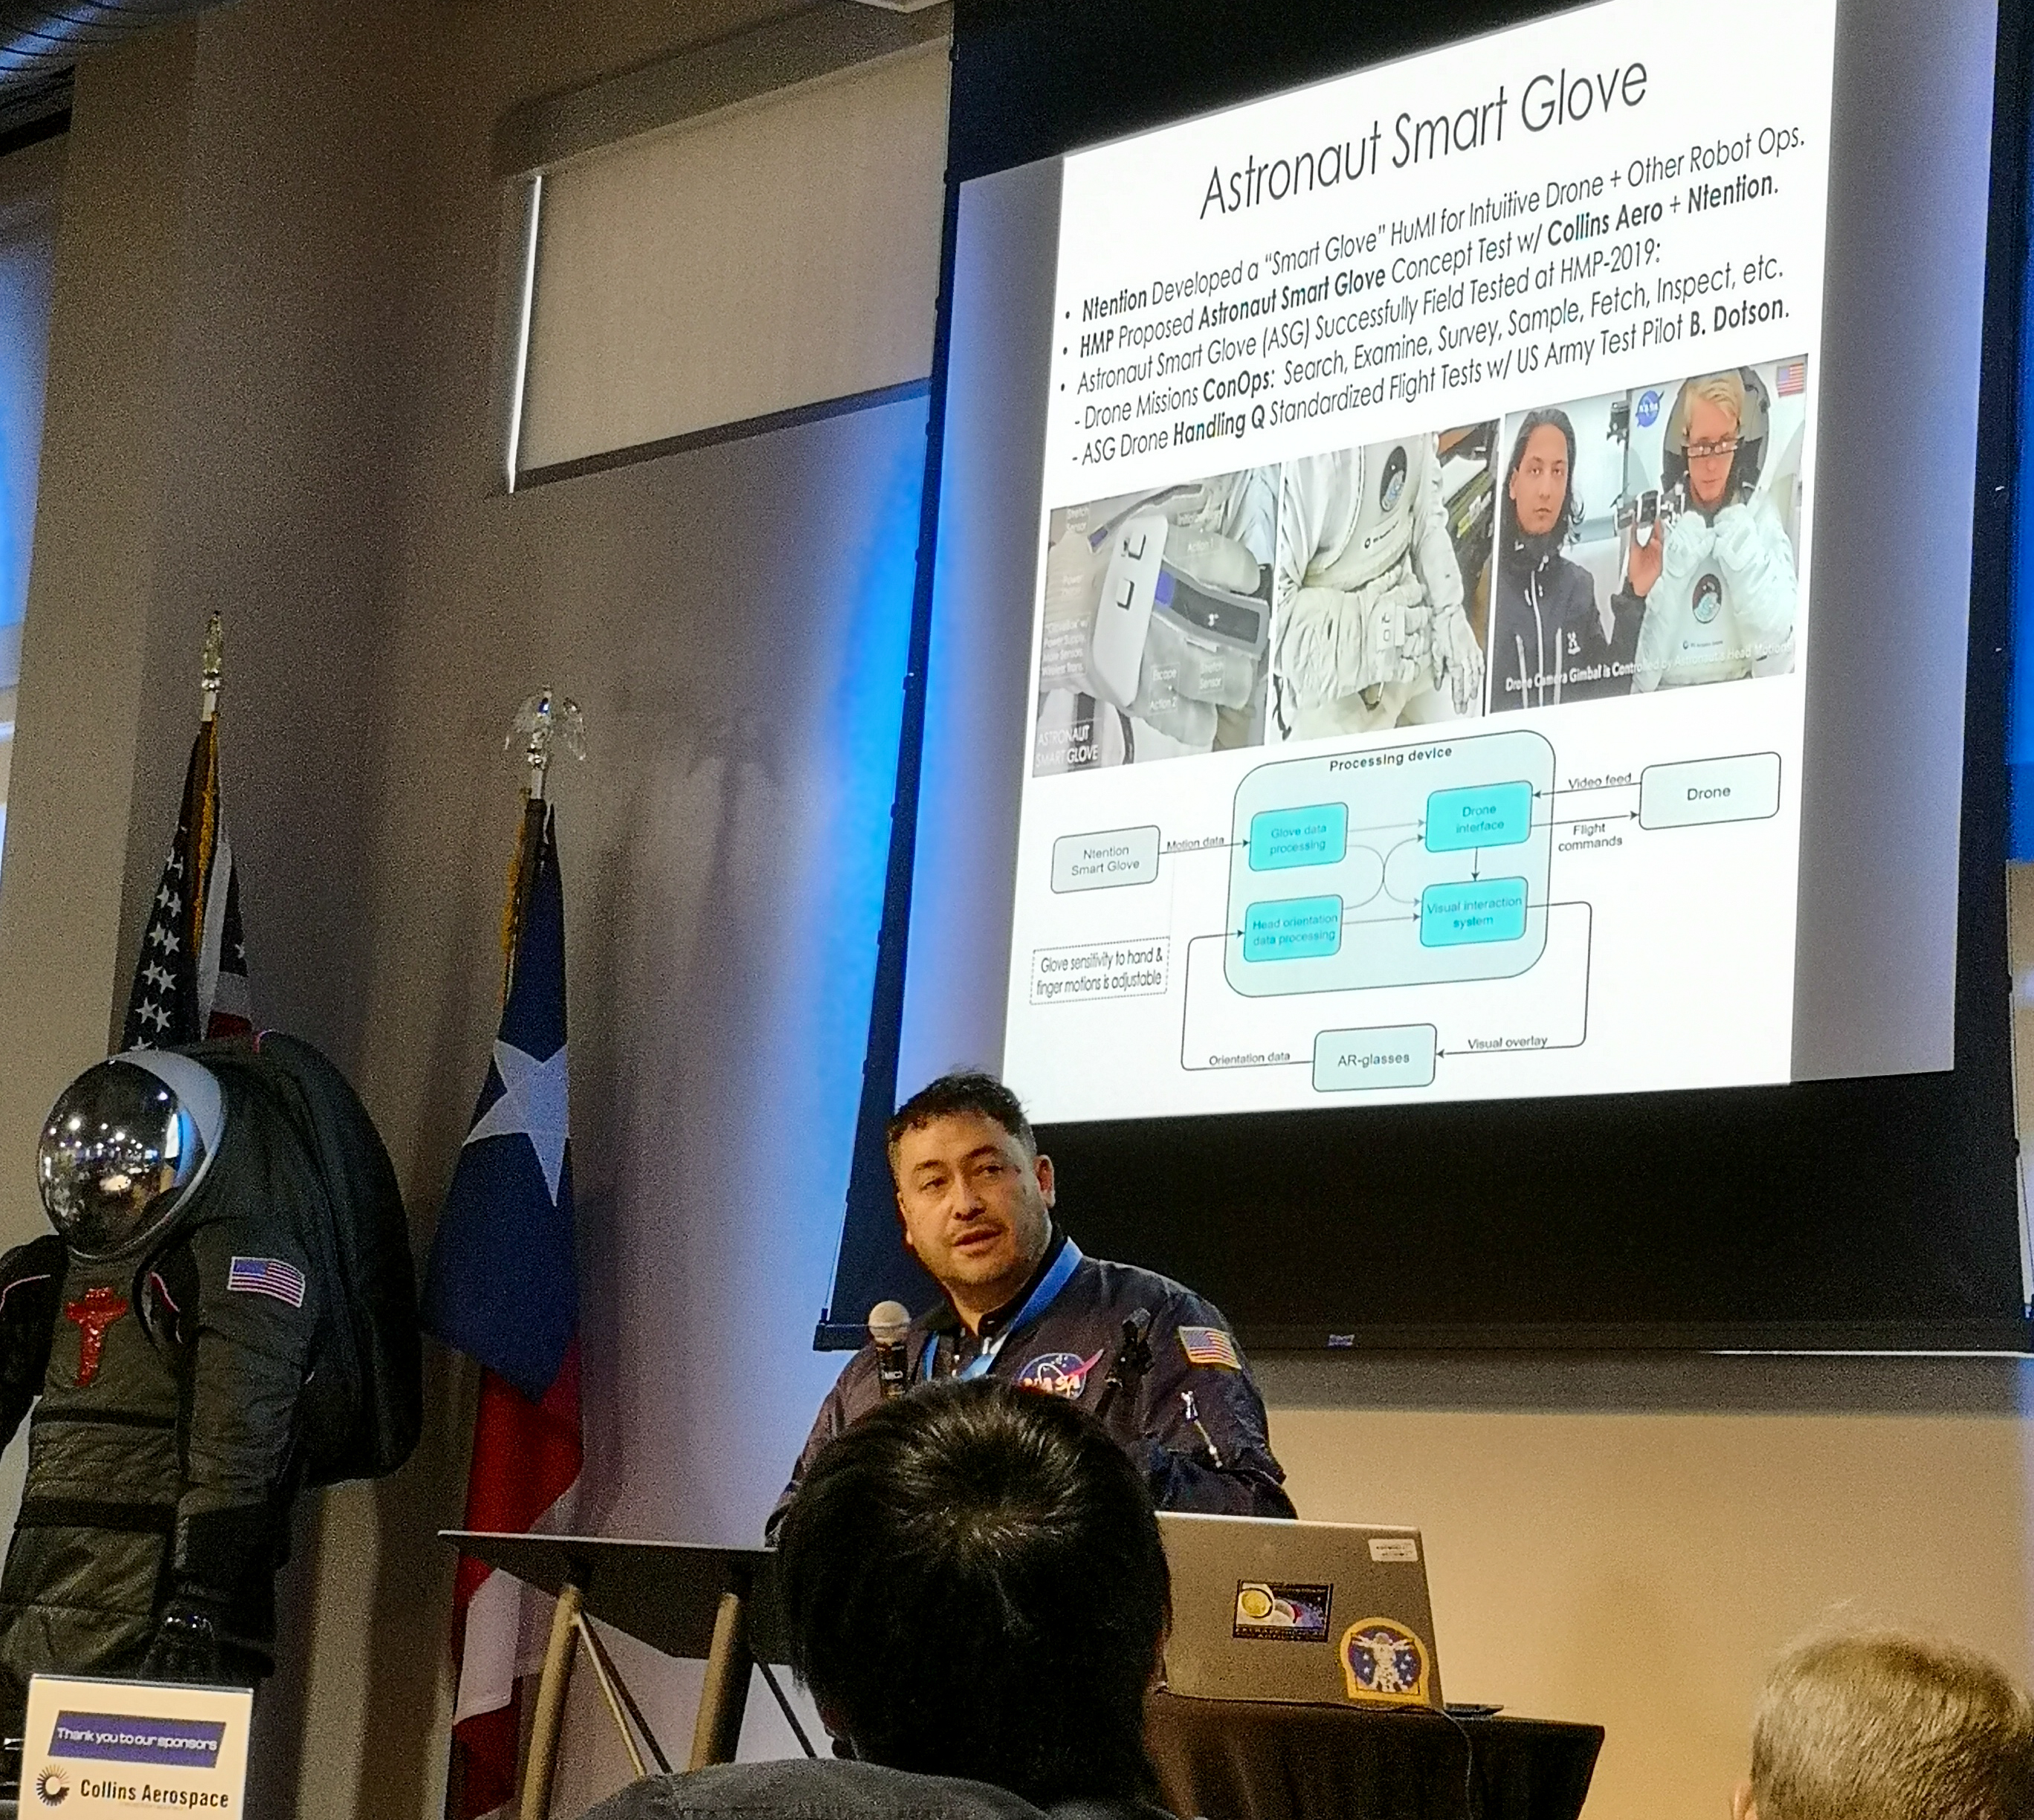 Dr. Pascal Lee presenting